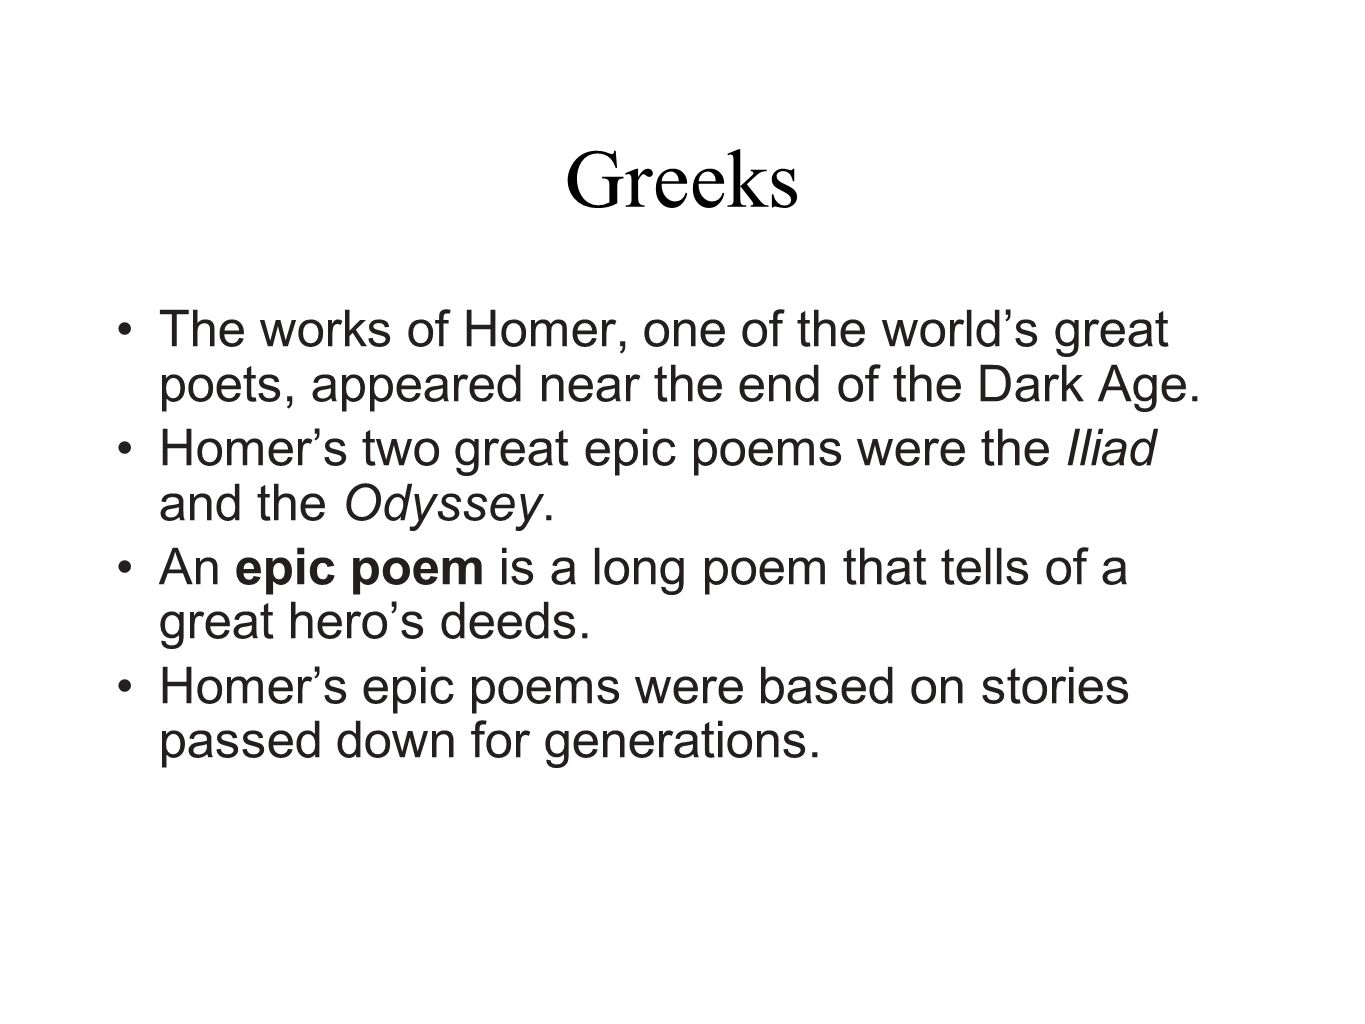 Greeks The works of Homer, one of the world's great poets, appeared near the end of the Dark Age.